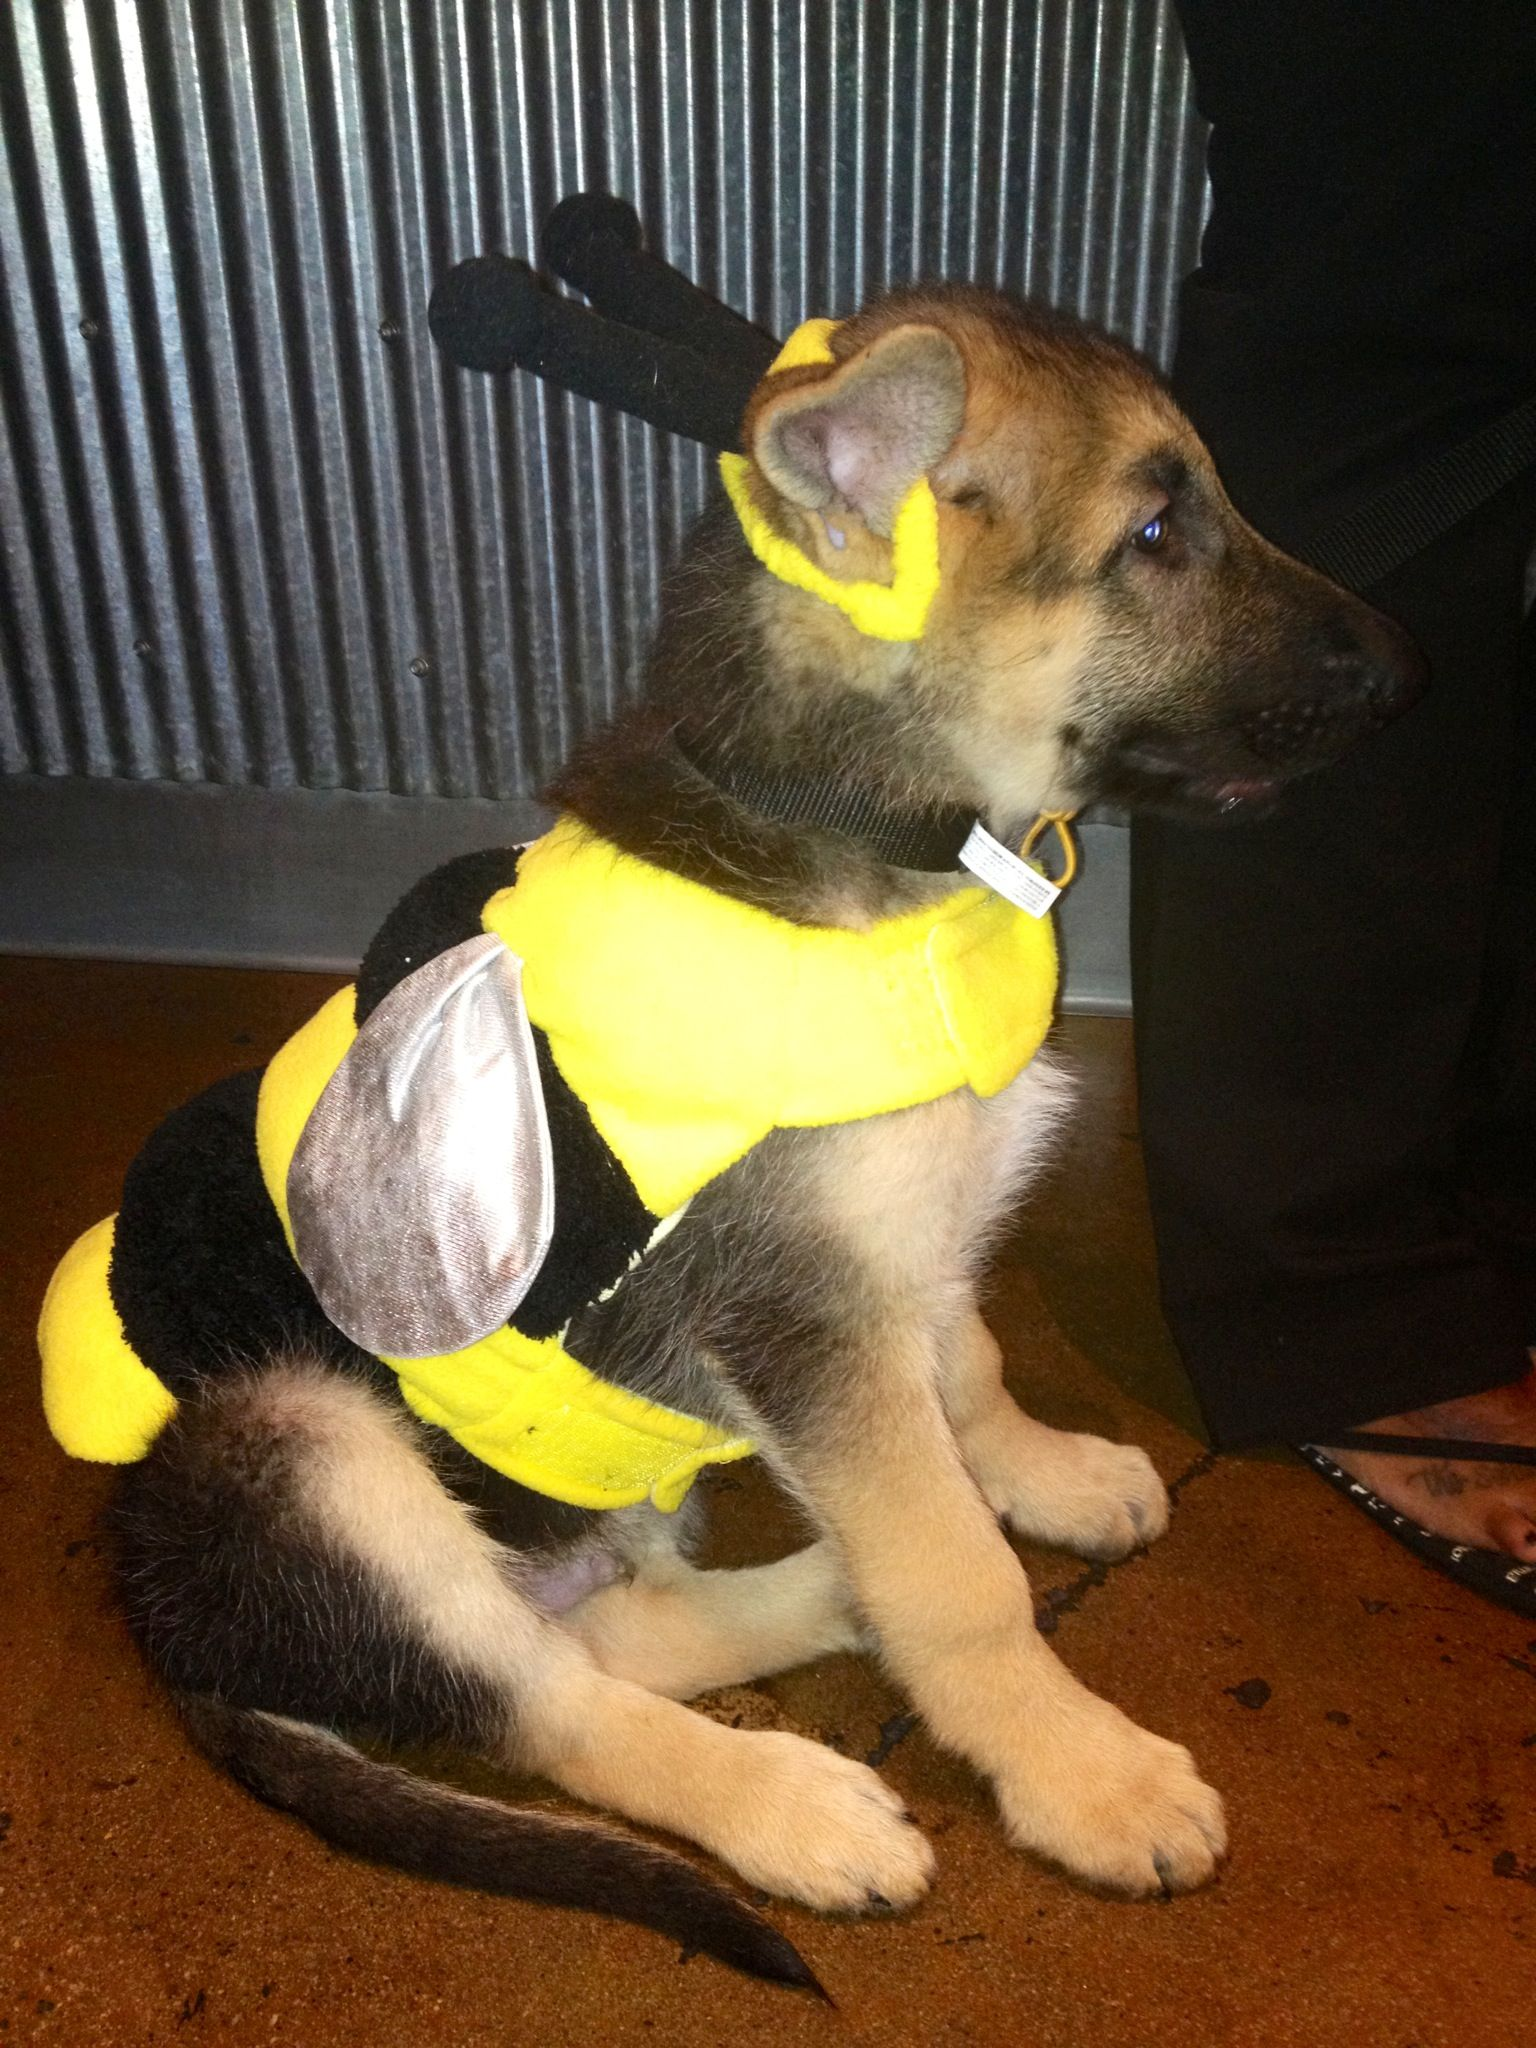 What a cute German Shepard puppy dressed up as a bumble